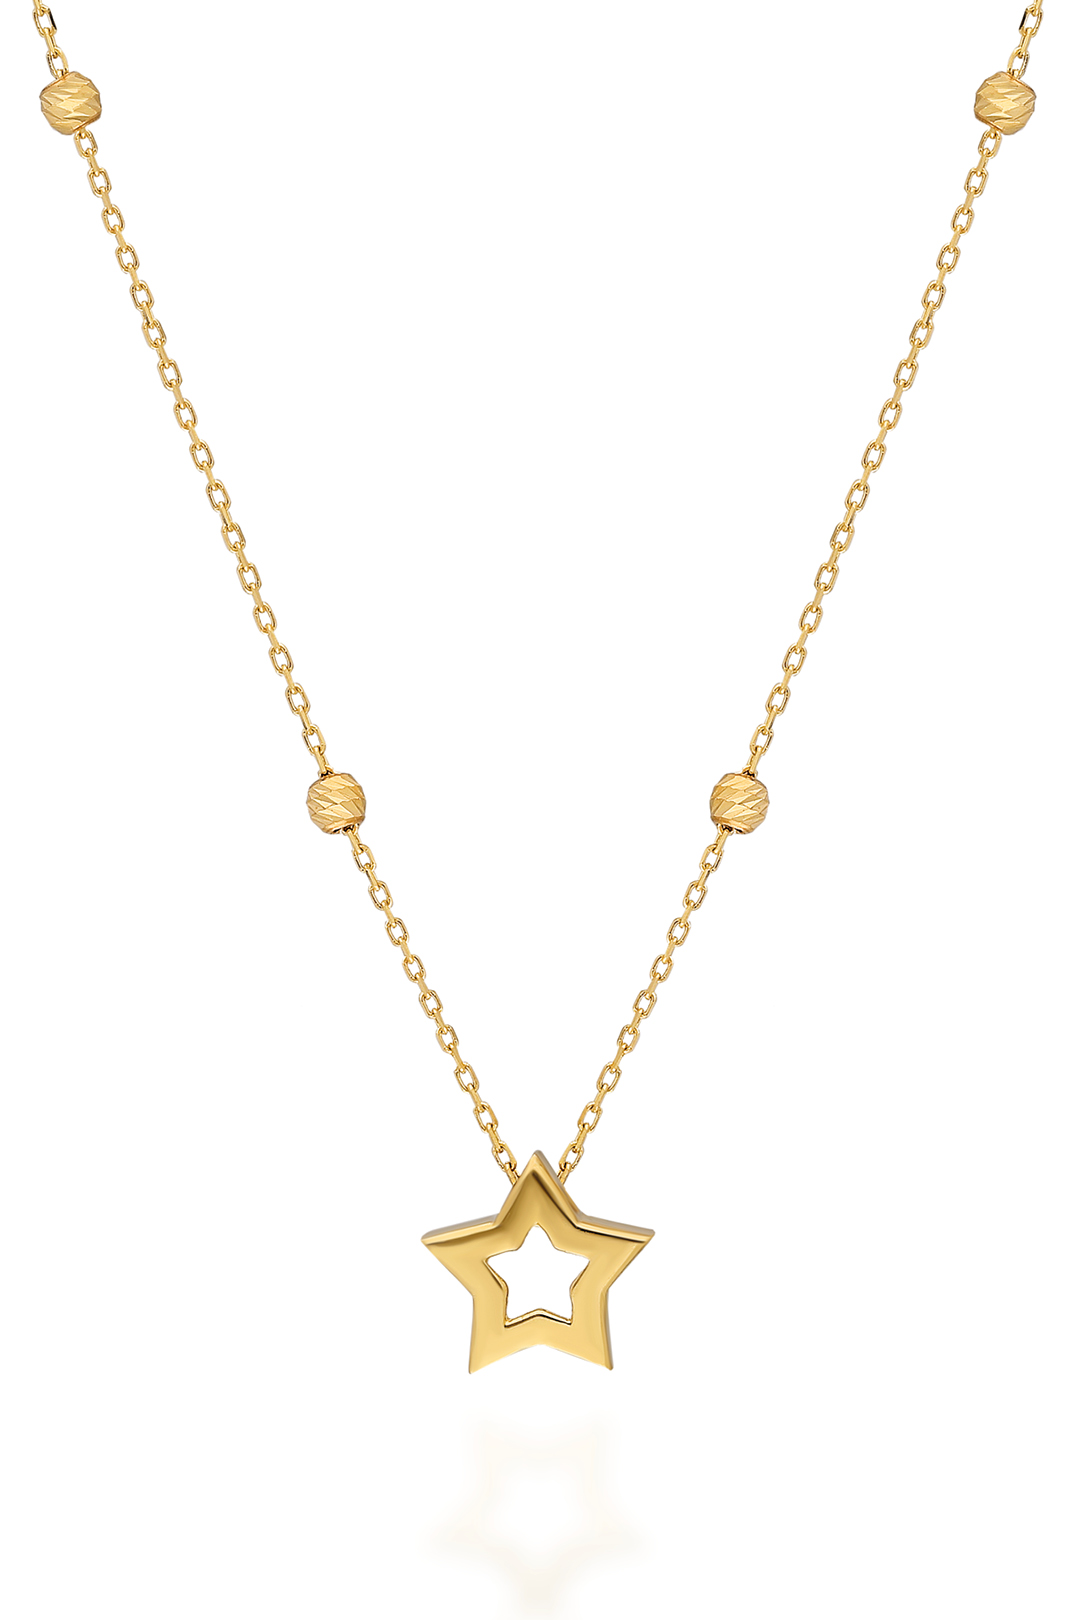 MINI BALLS AND STAR NECKLACE